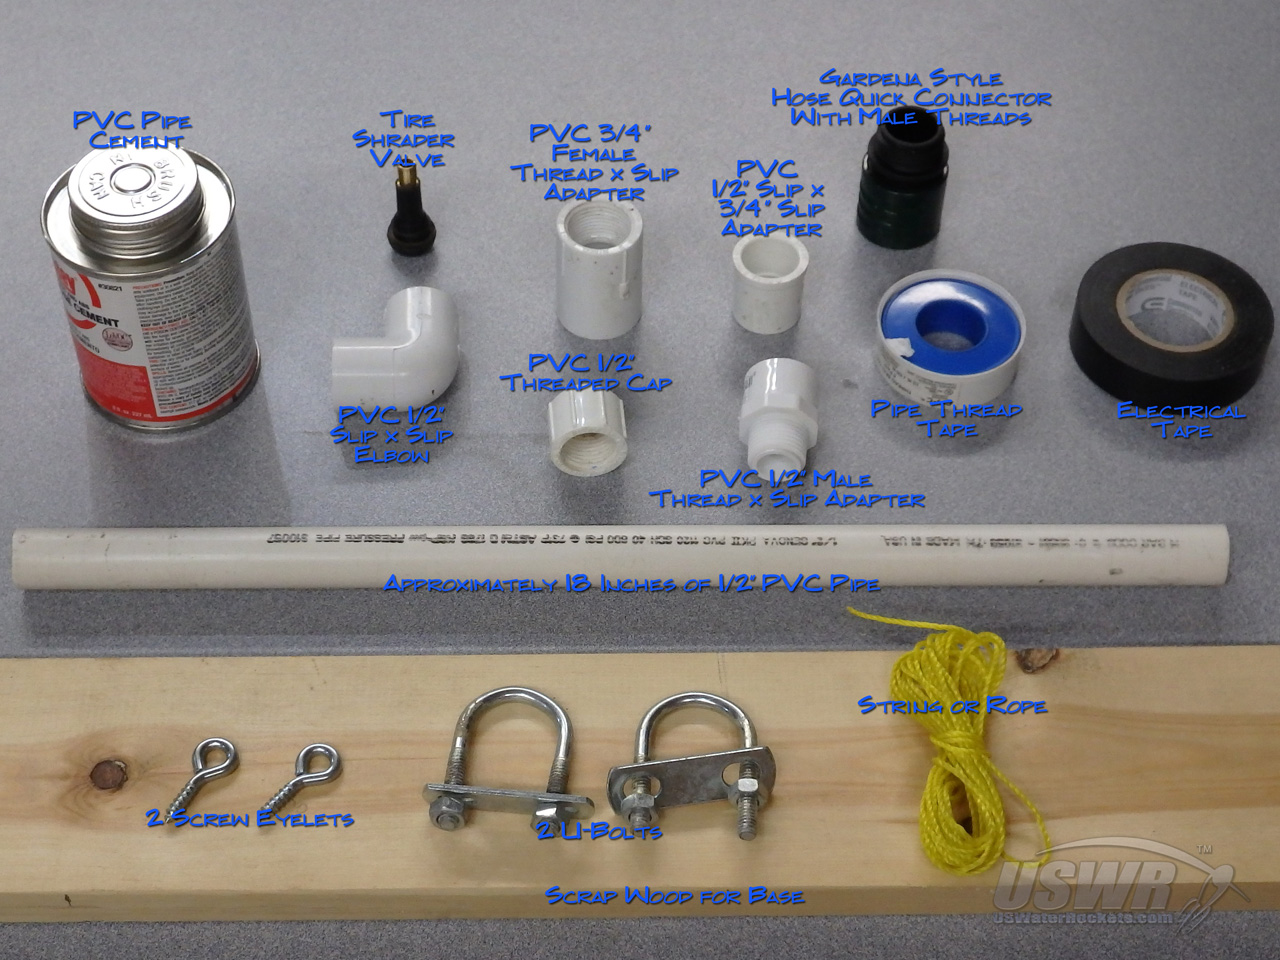 Complete Parts List For The Water Rocket Gardena Launcher